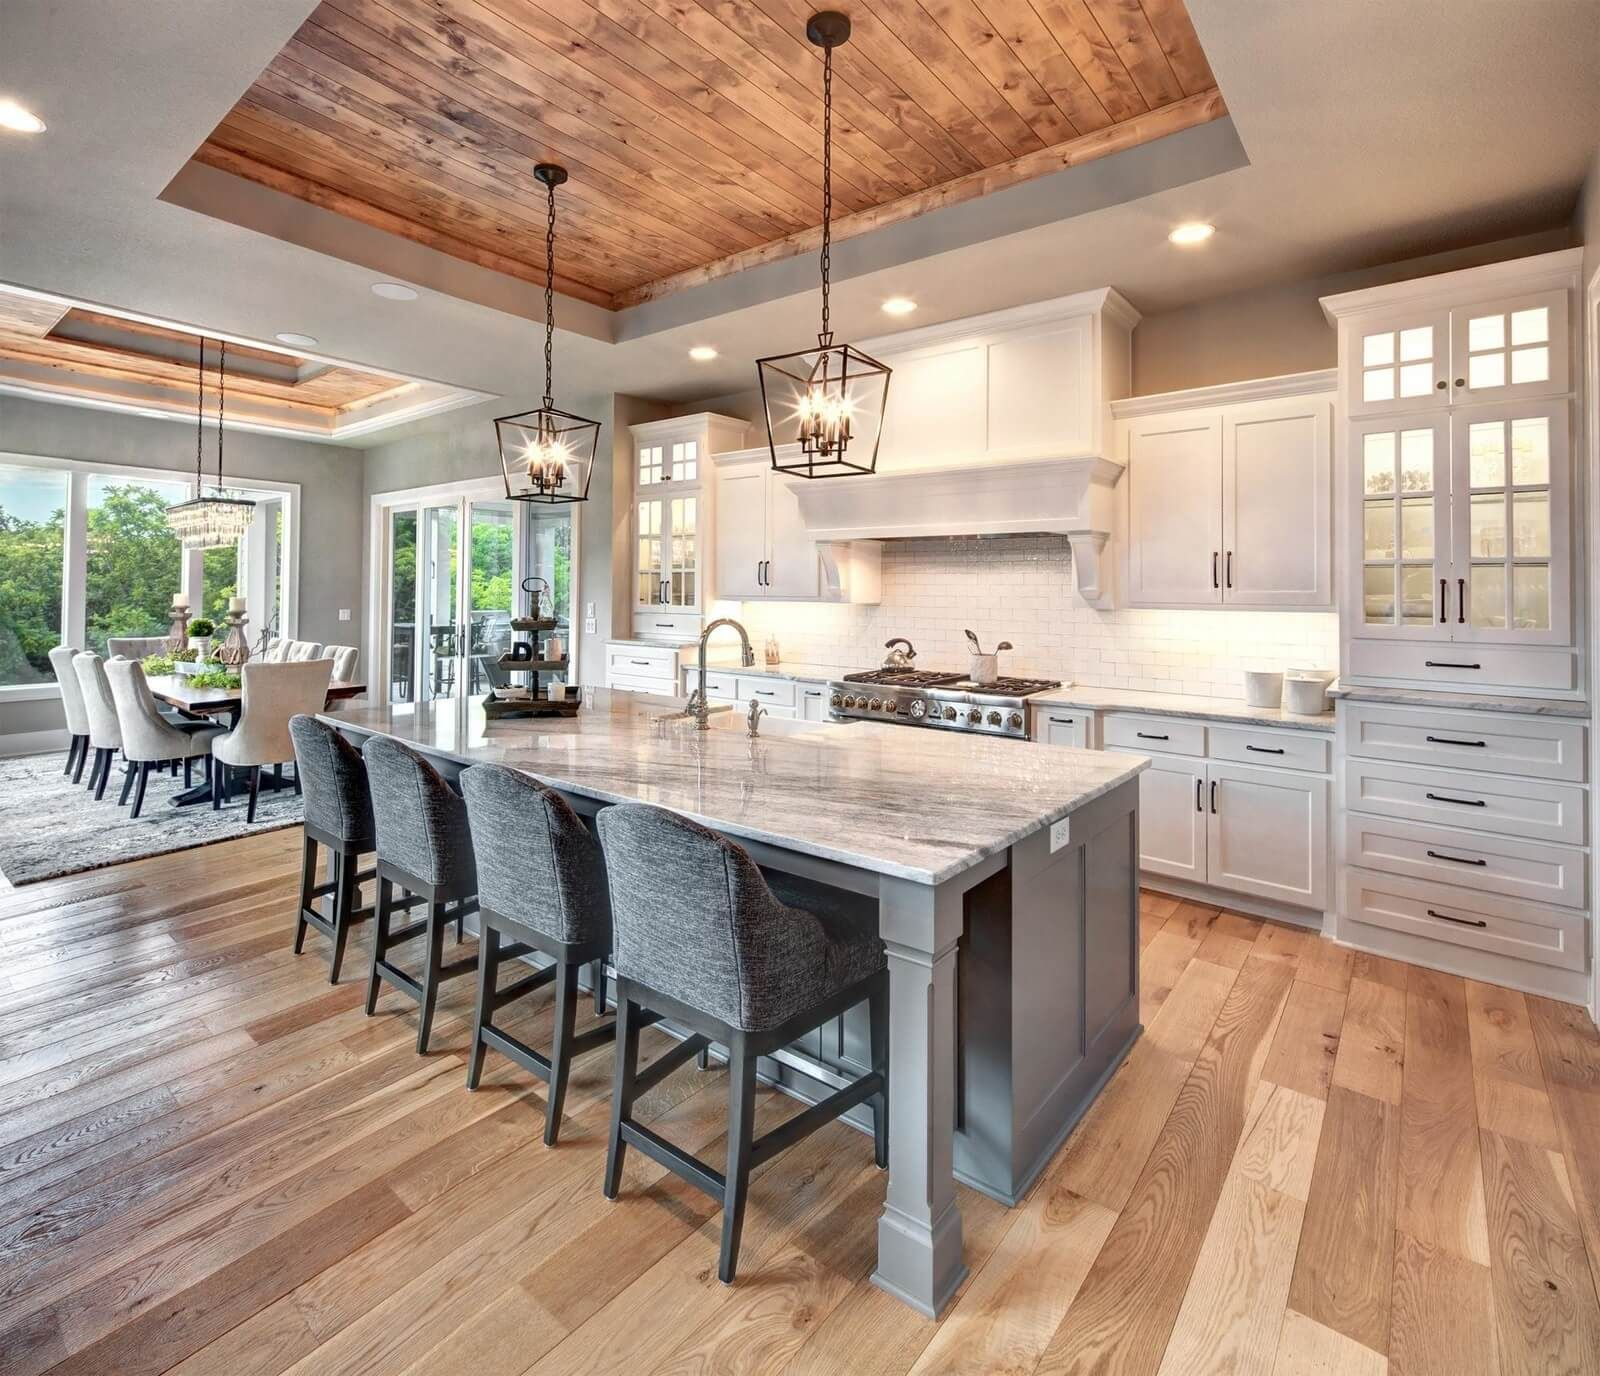 Ideas To Remodel Kitchen Classic Light Wood Floor Edge Wood Floor Kitchen Kitchen Inspiration Design Kitchen Remodel